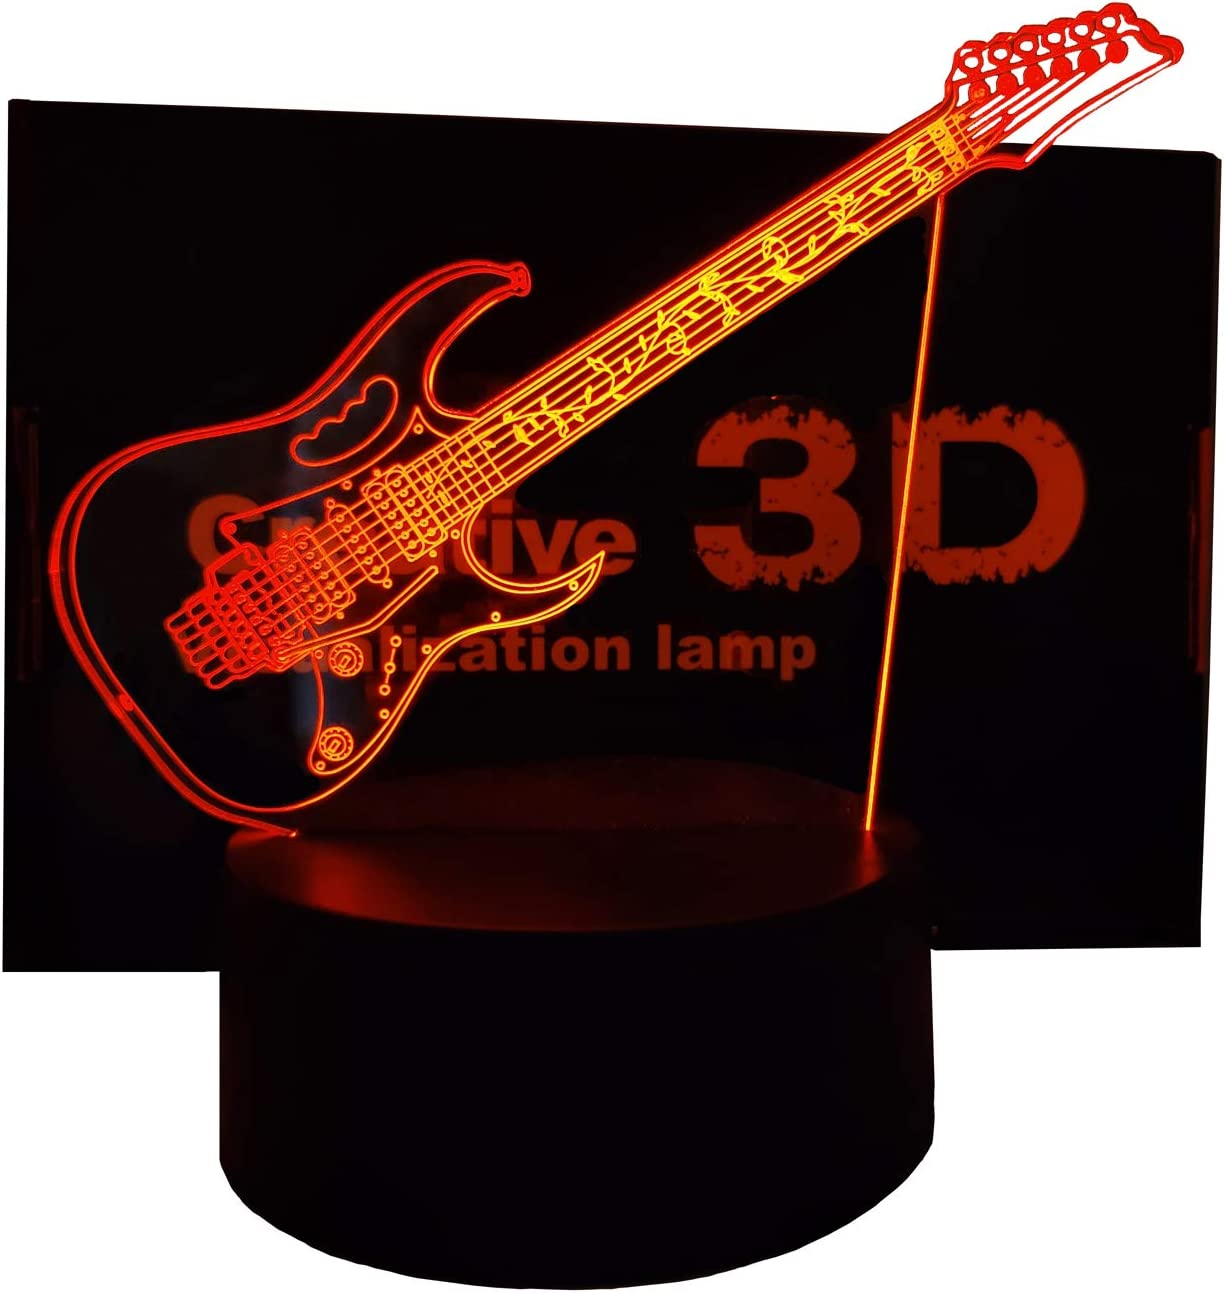 TOPXCEGUU Jem7V 3D Illusion LED Lamp Night Light Electric Guitar Decor for Home Decoration Xmas Birthday 16 Colors with Remote Control